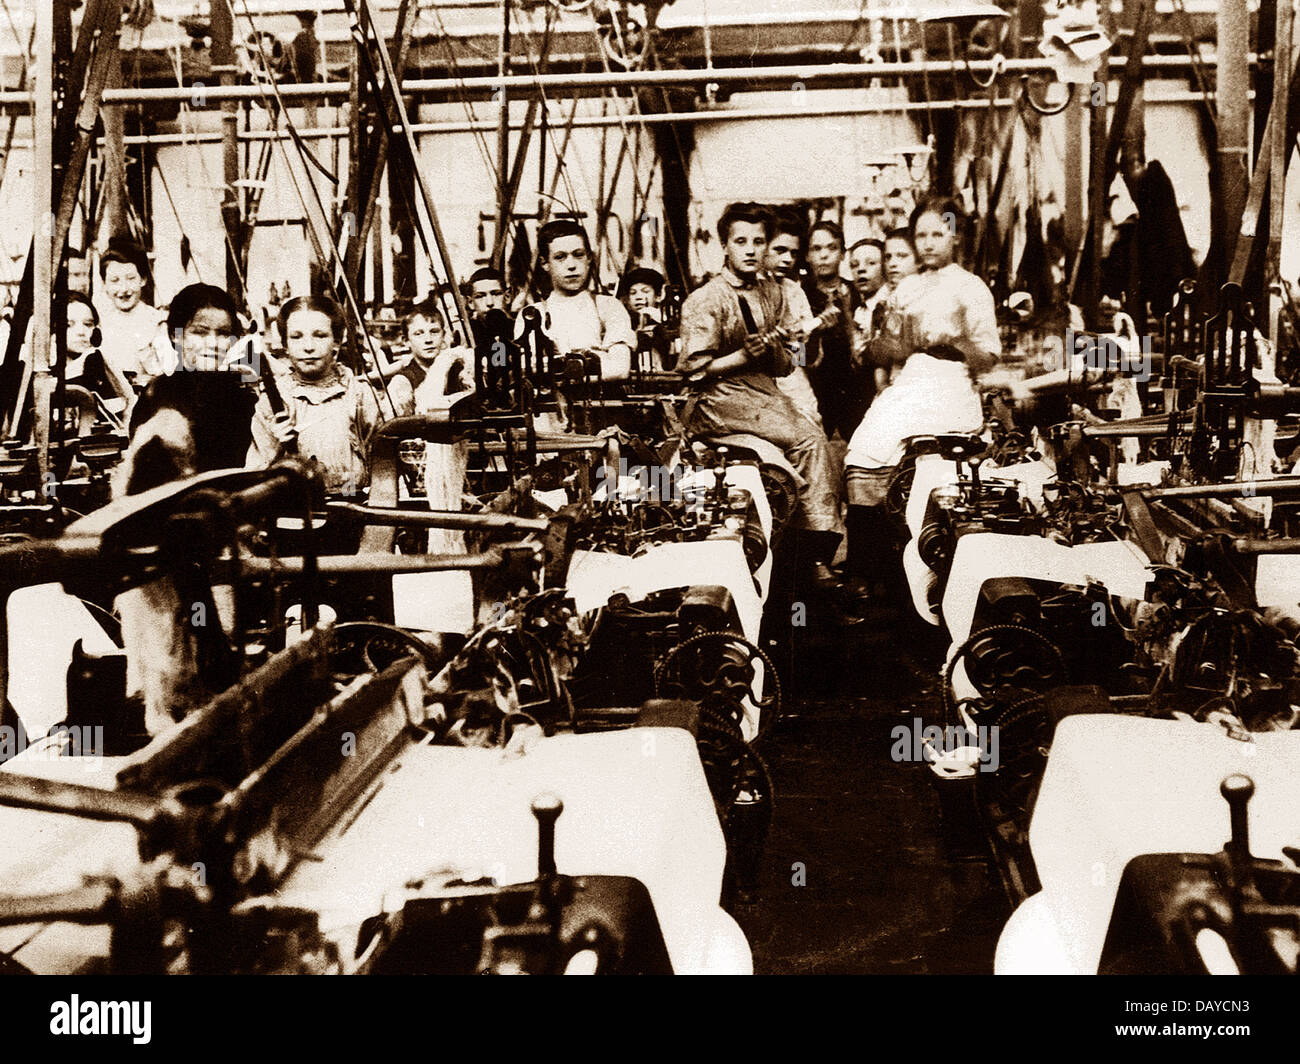 Burnley Textile Workers early 1900s - Stock Image